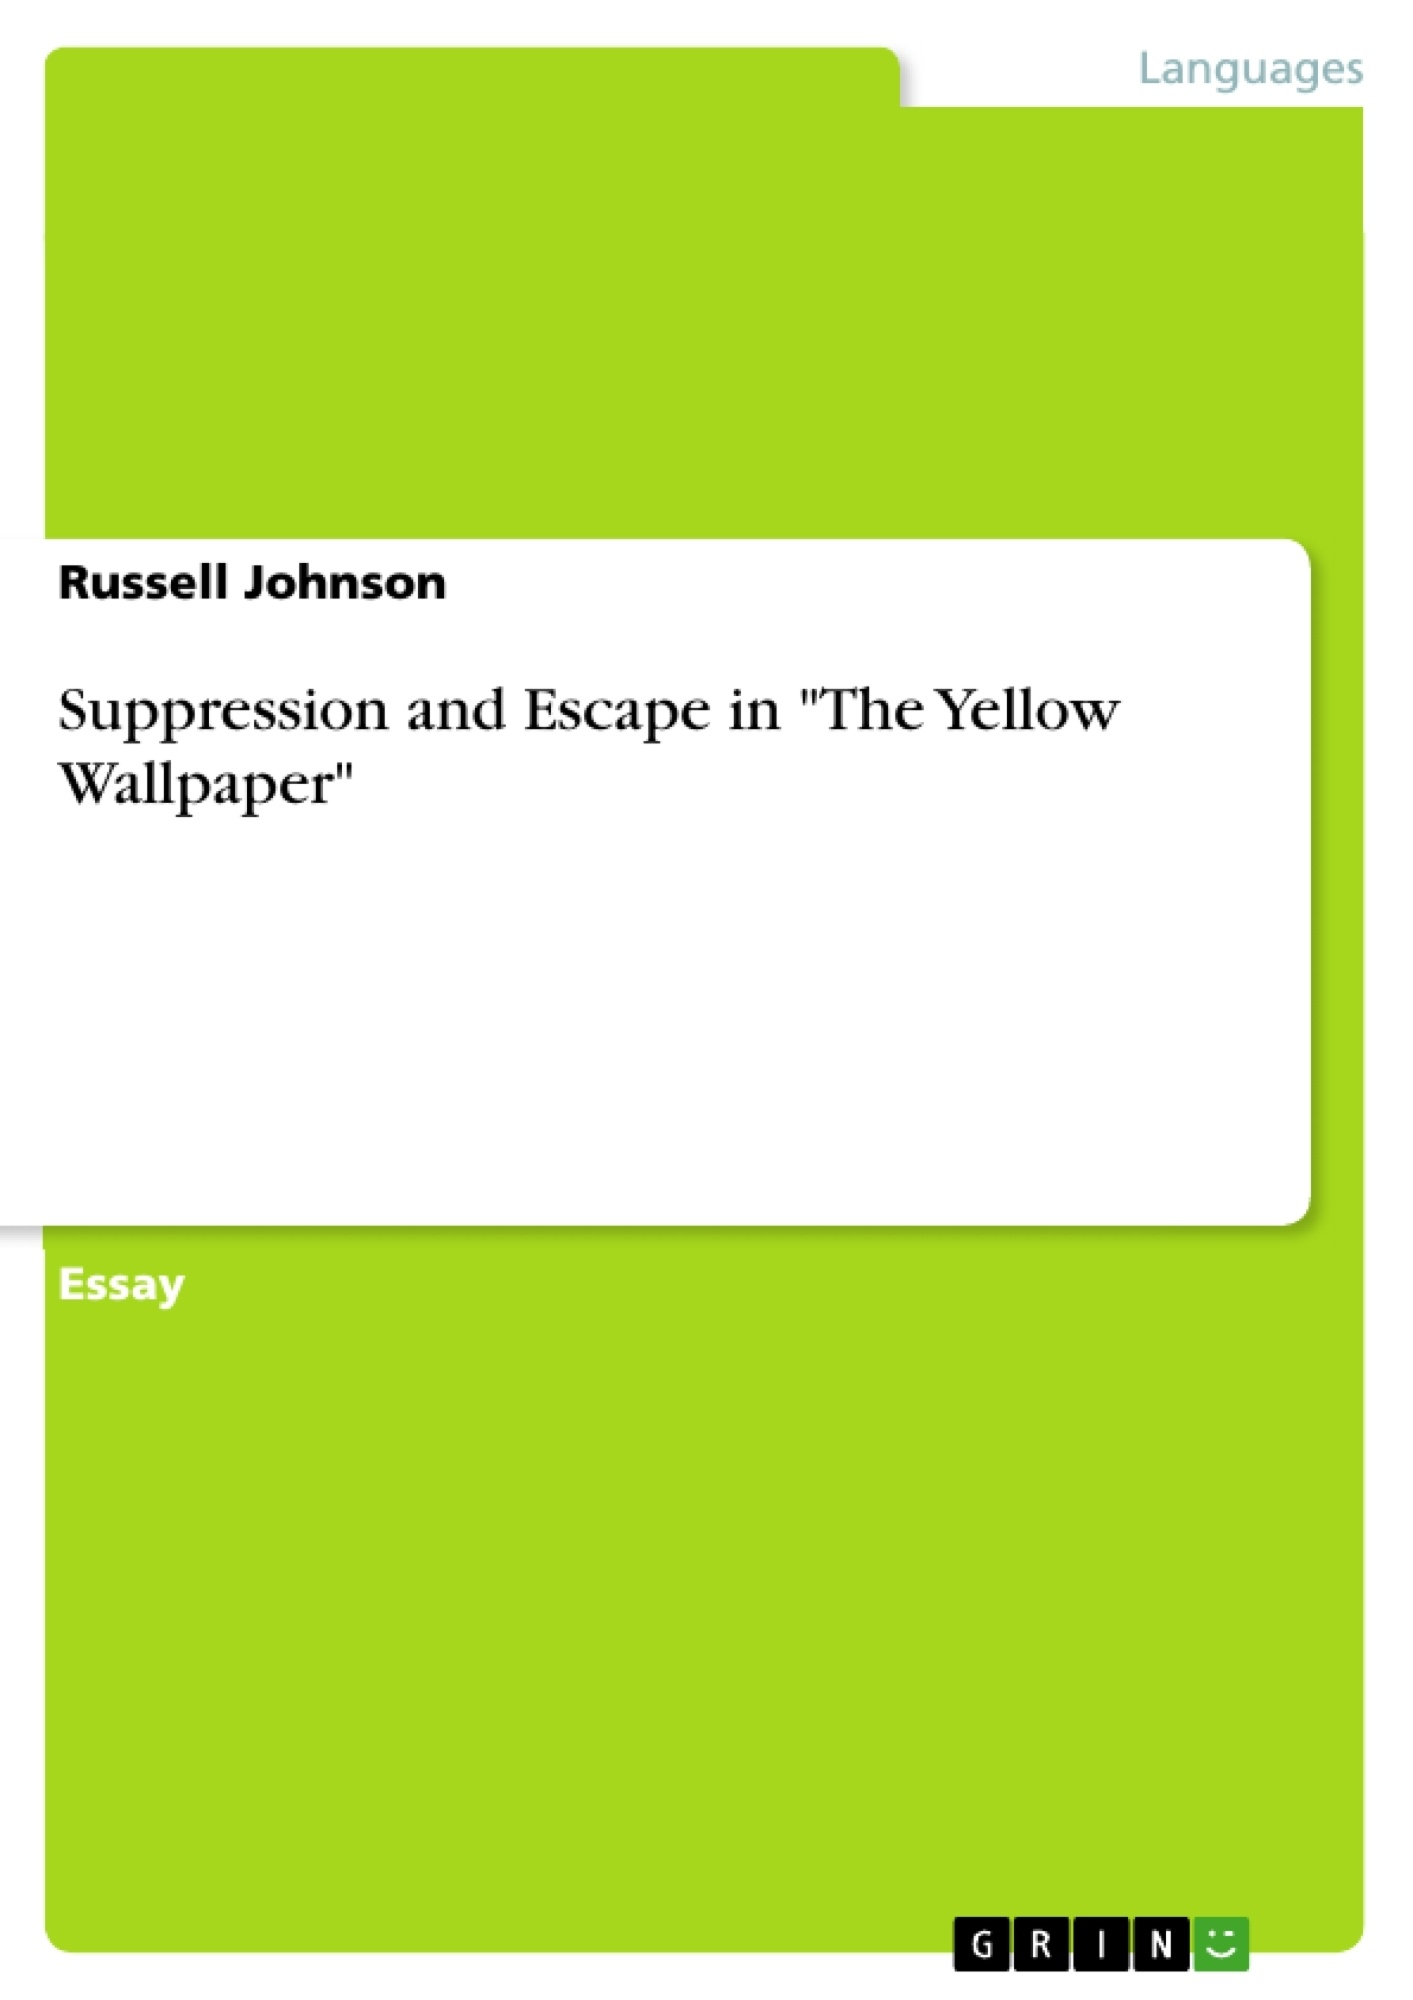 Suppression And Escape In The Yellow Wallpaper  Publish Your  Suppression And Escape In The Yellow Wallpaper Essay